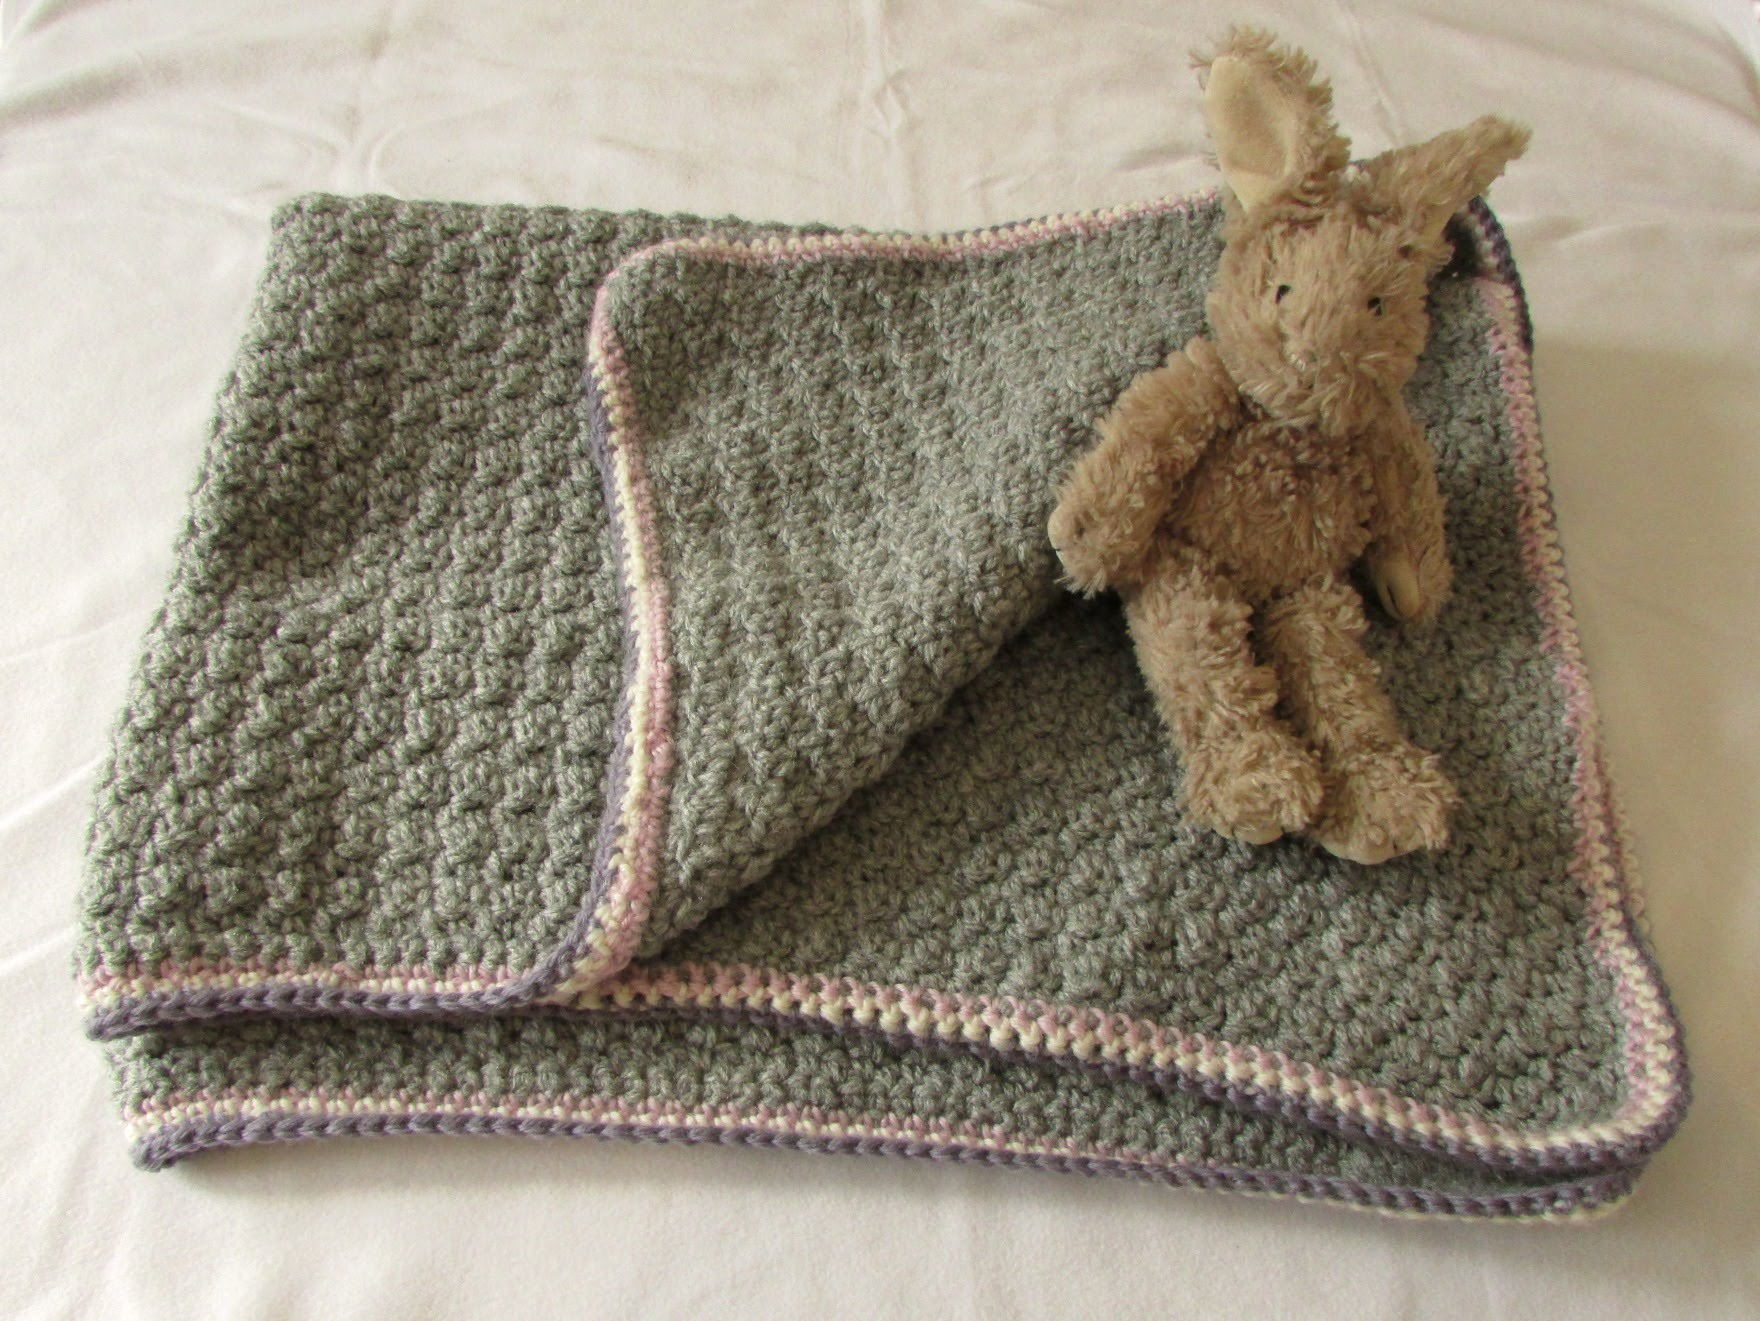 Easy Knitting Pattern For Baby Blanket Three Easy Crochet Ba Blanket Ideas Crochet And Knitting